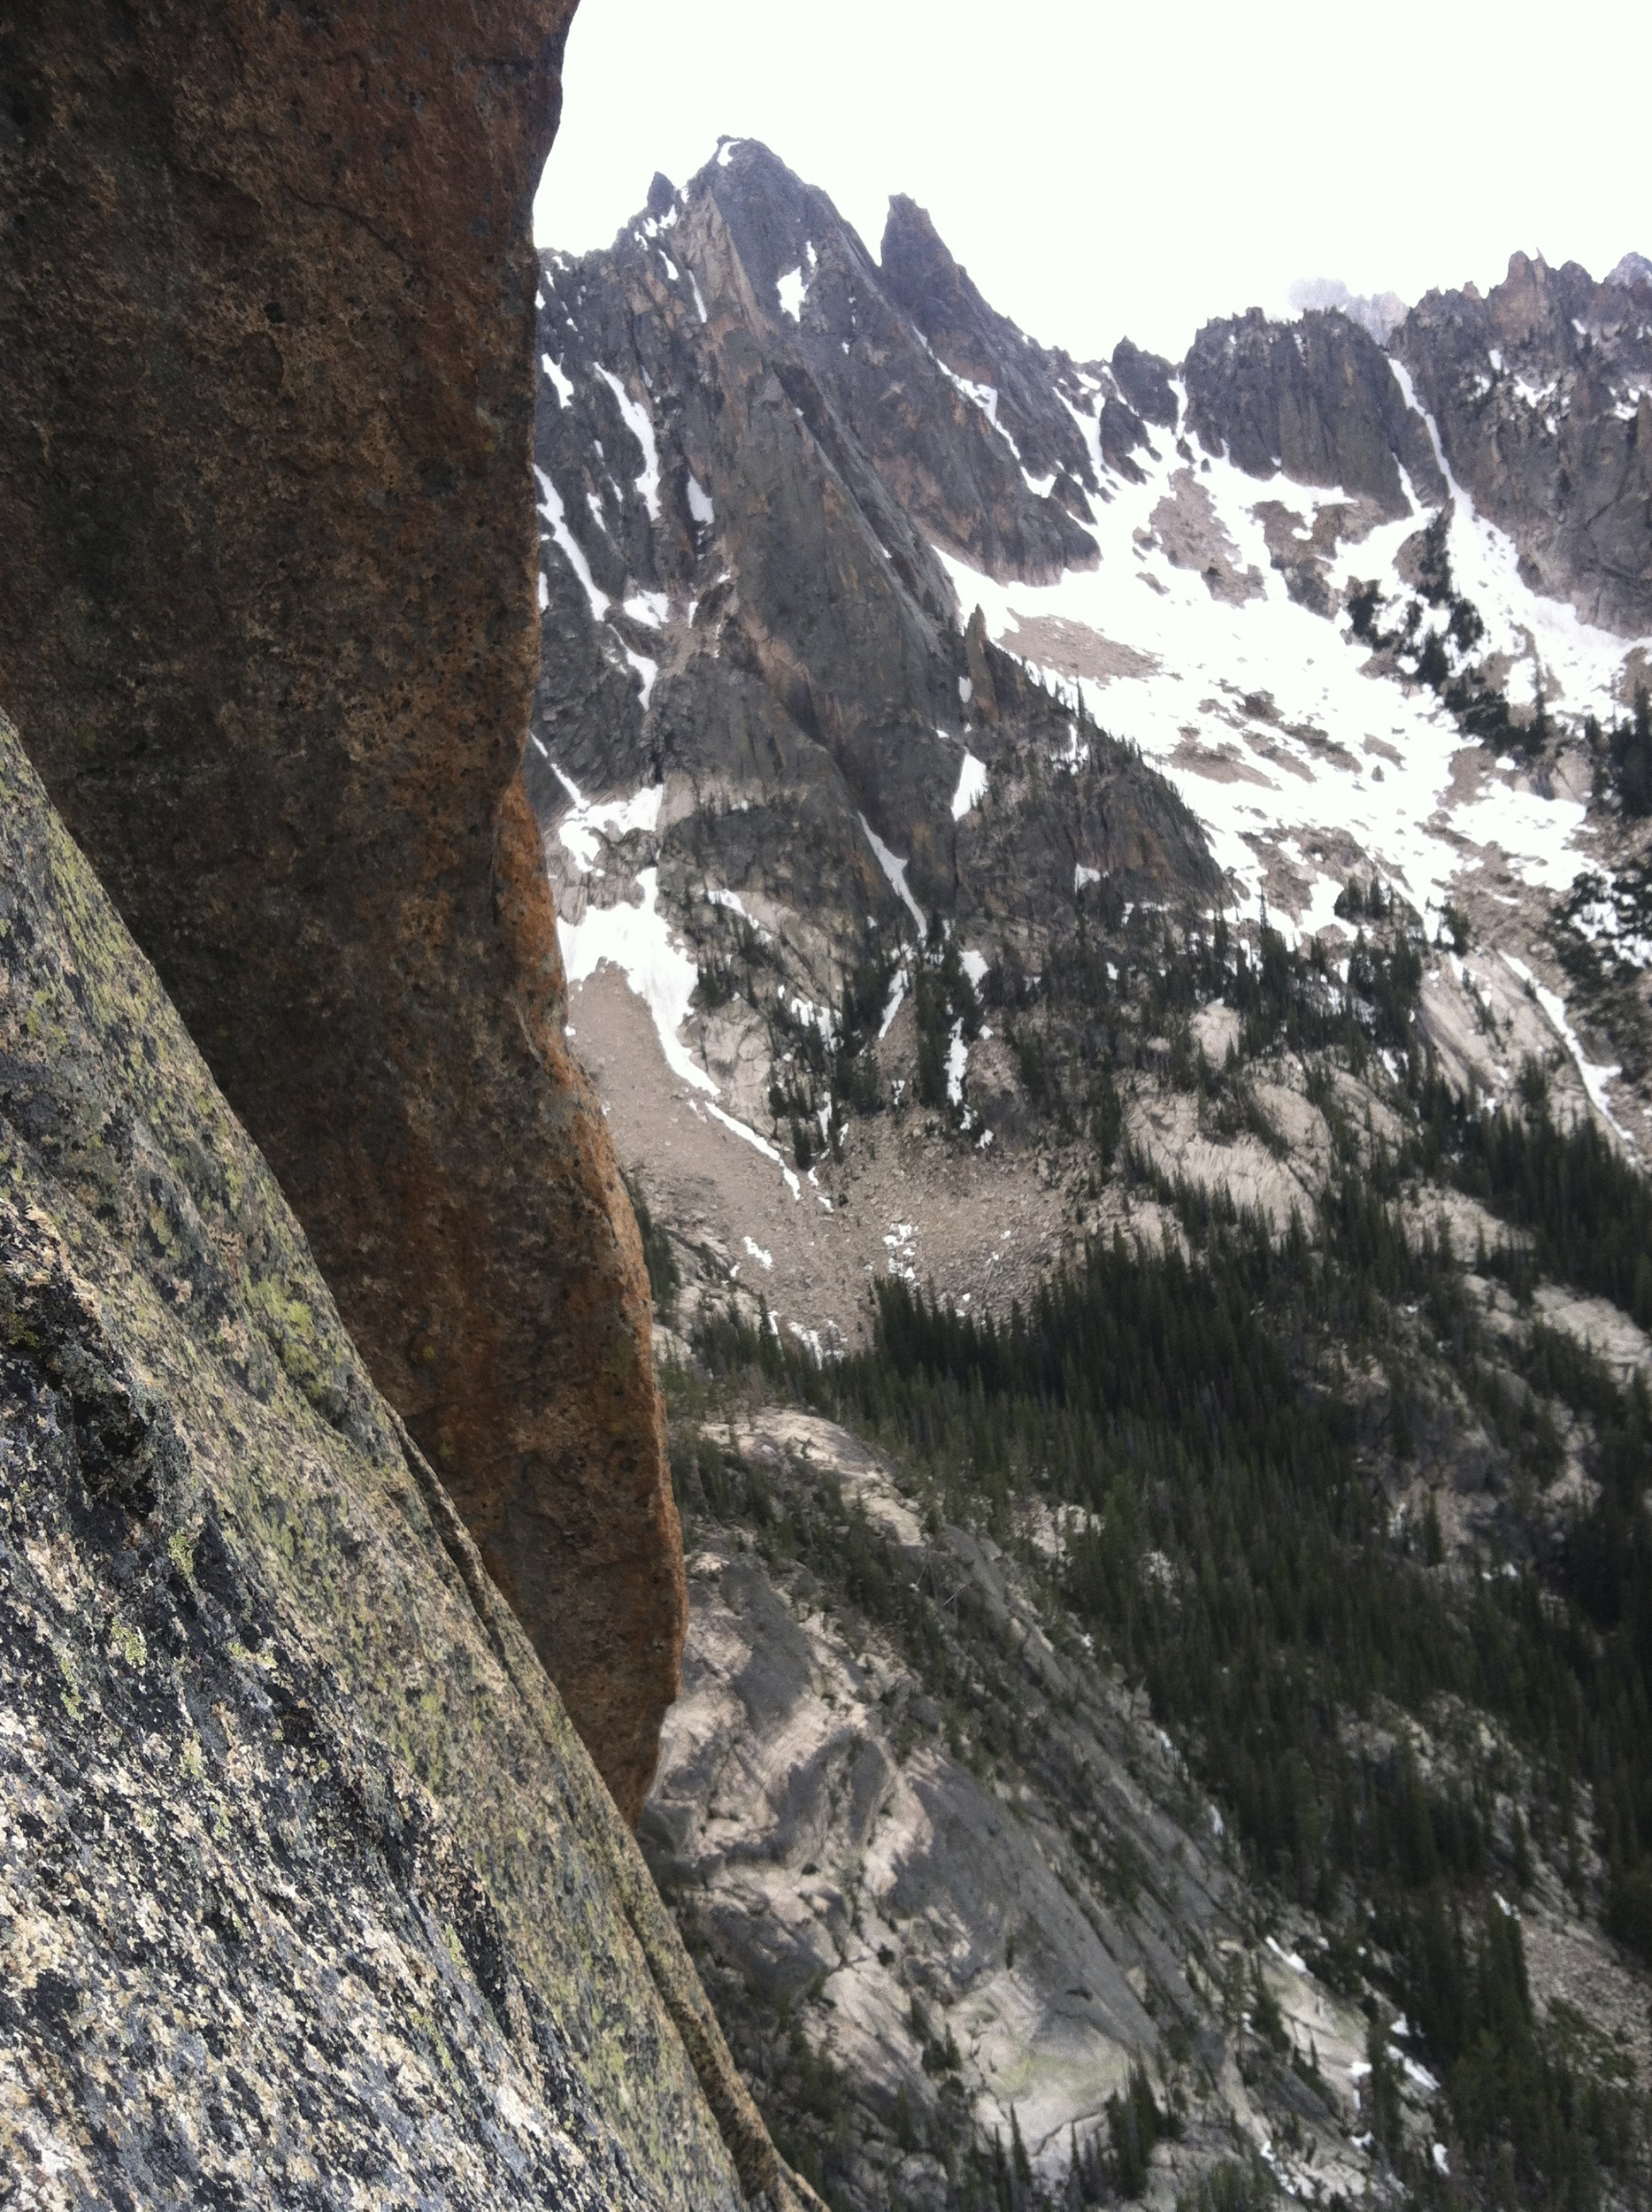 Looking Towards the Other Perches From Where The 5th Belay Should Have Been